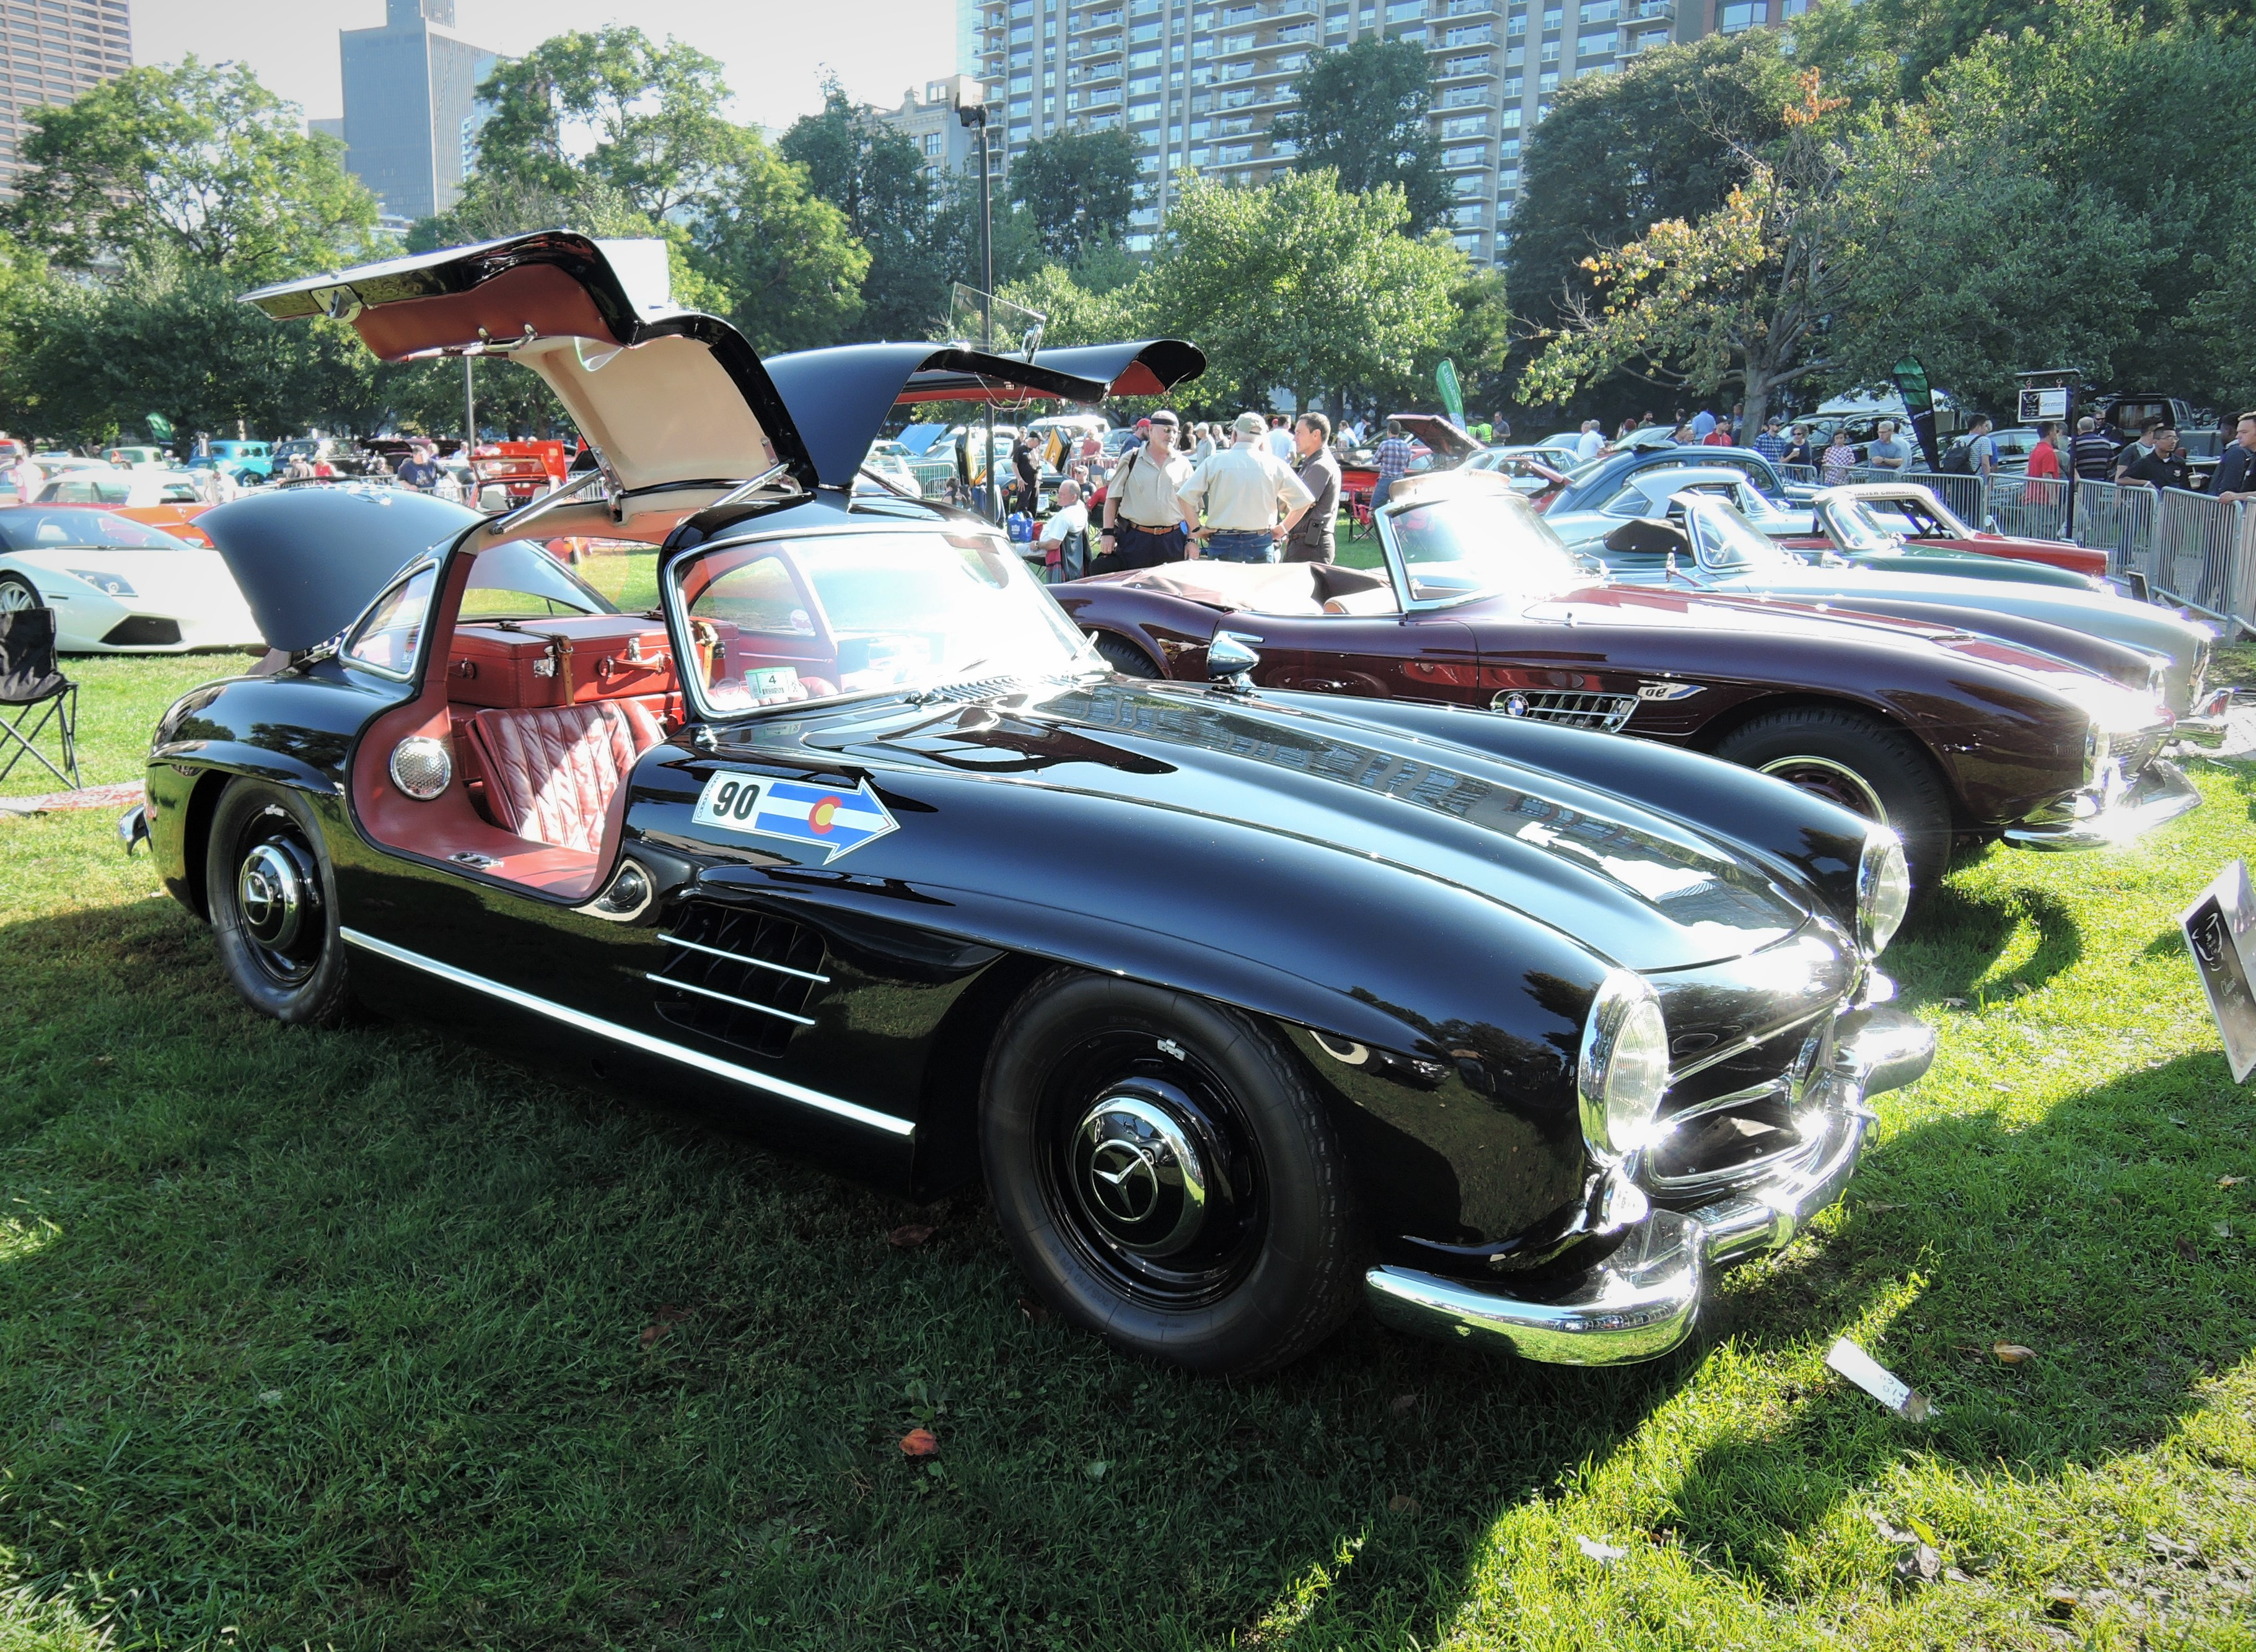 black 1955 Mercedes-Benz 300 SL Gullwing - The Boston Cup 2017